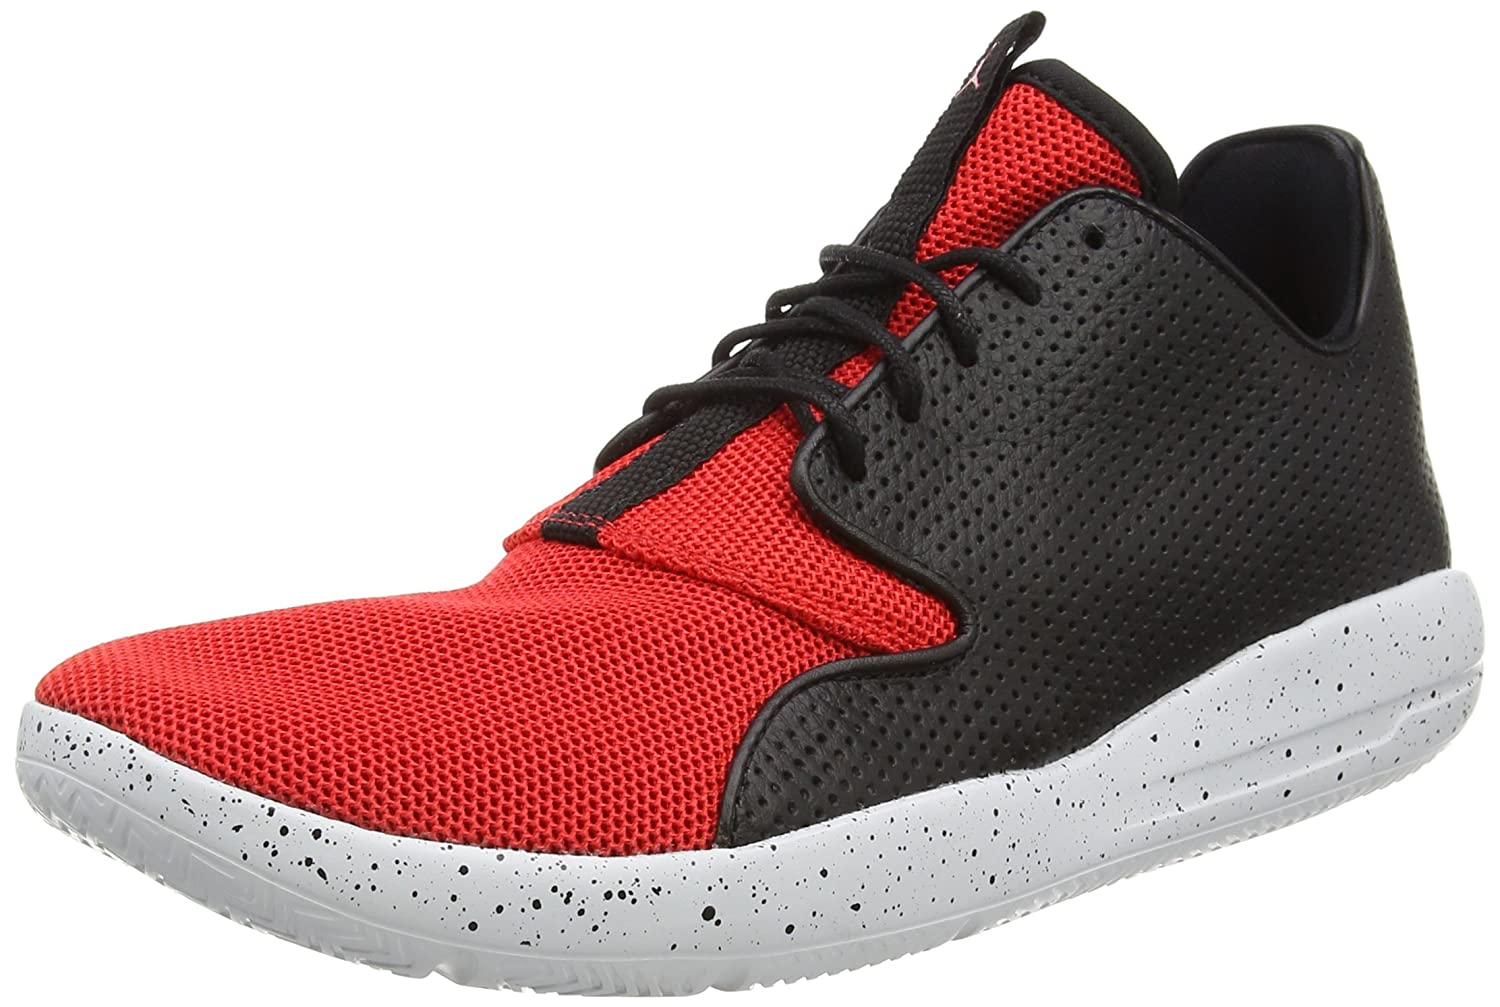 Jordan Men Eclipse (Gray/Cool Gray/White/Black) B01AZCX75W 10.5 M US|Red